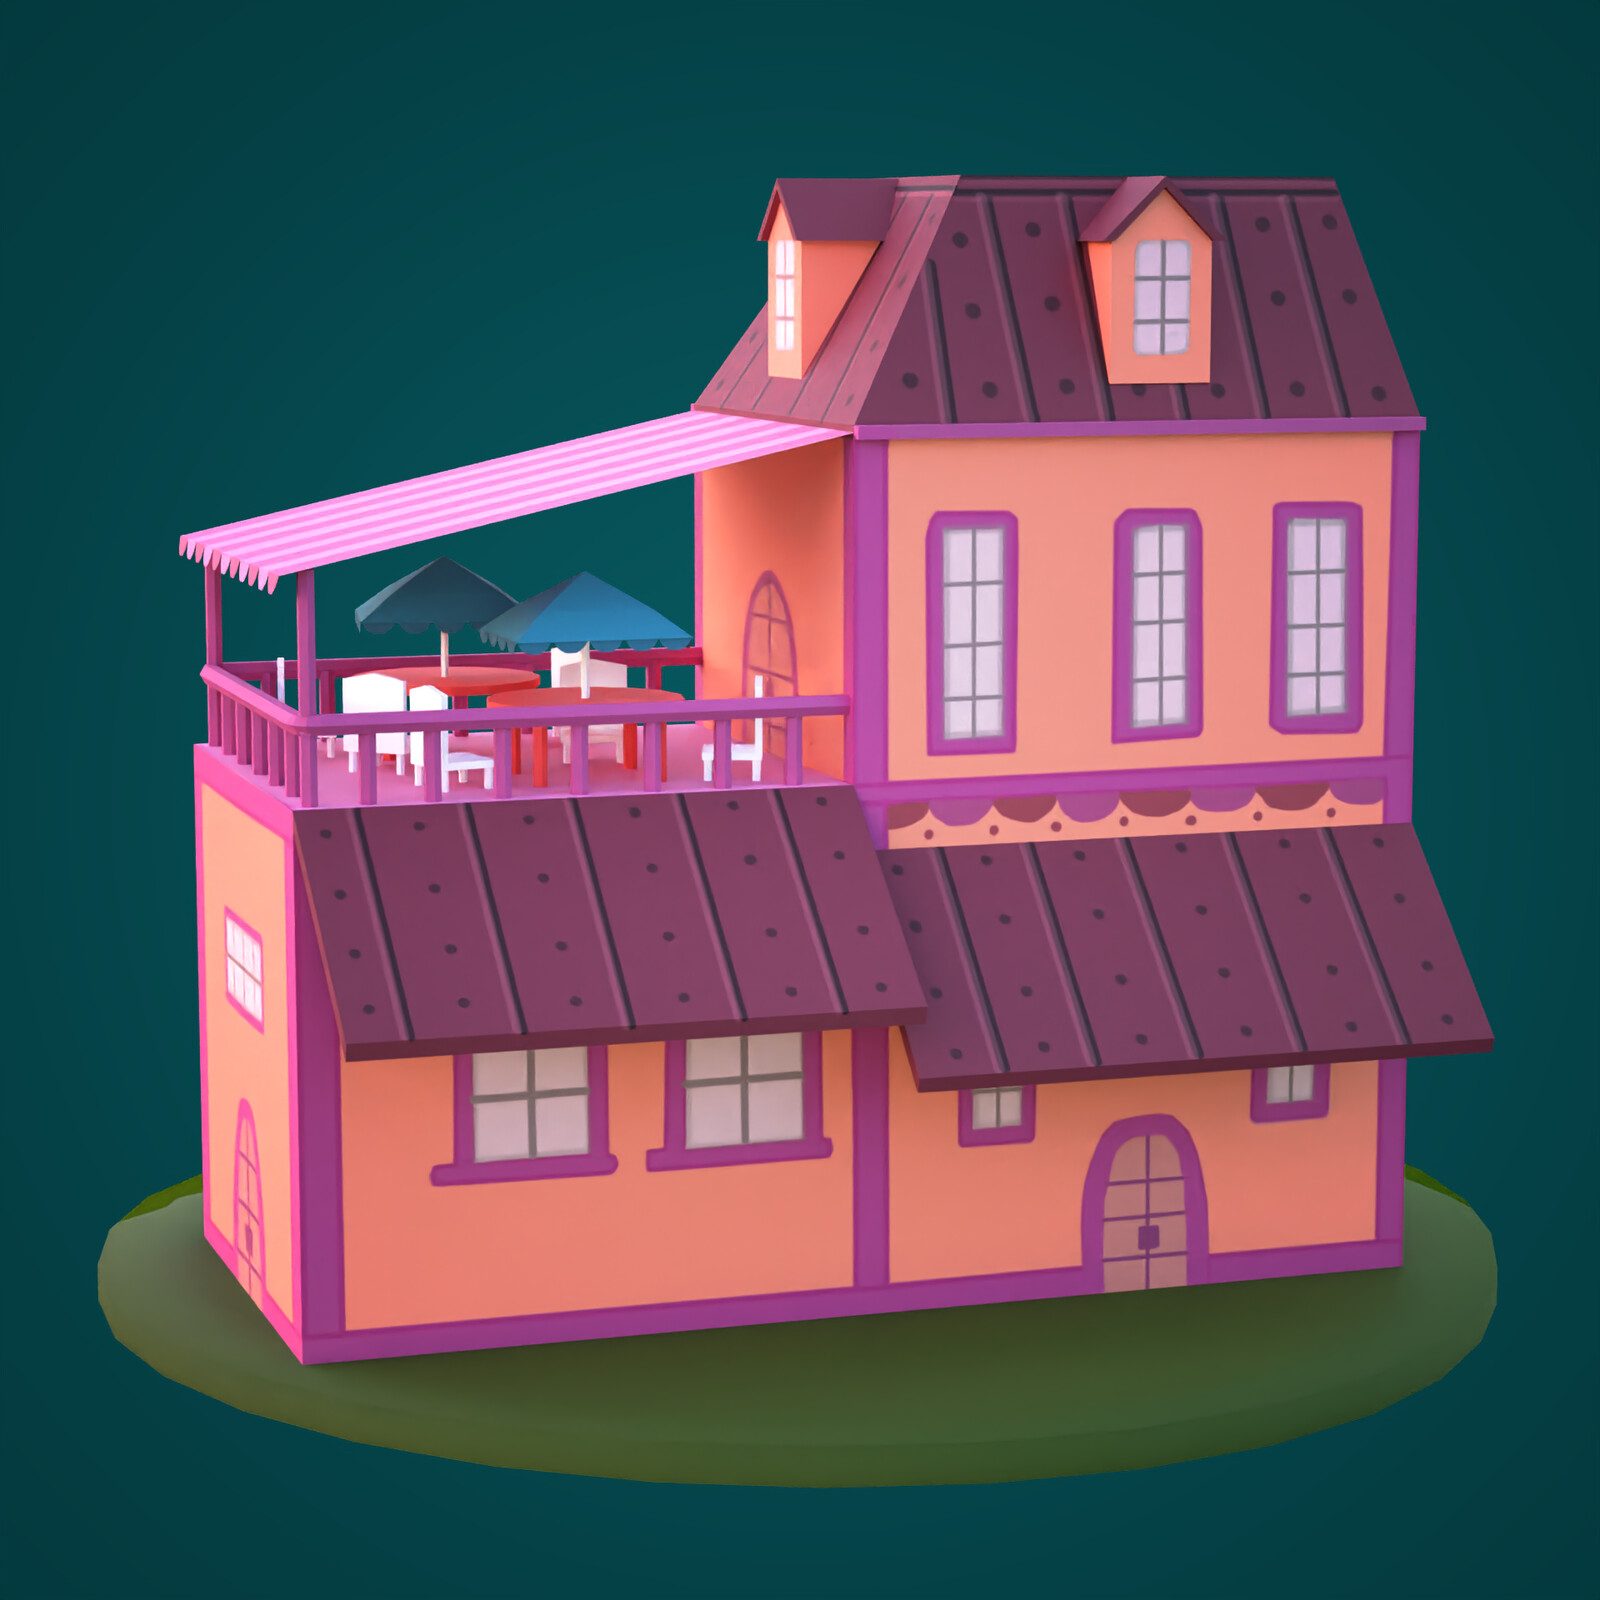 The Land of Ooo - Orange house